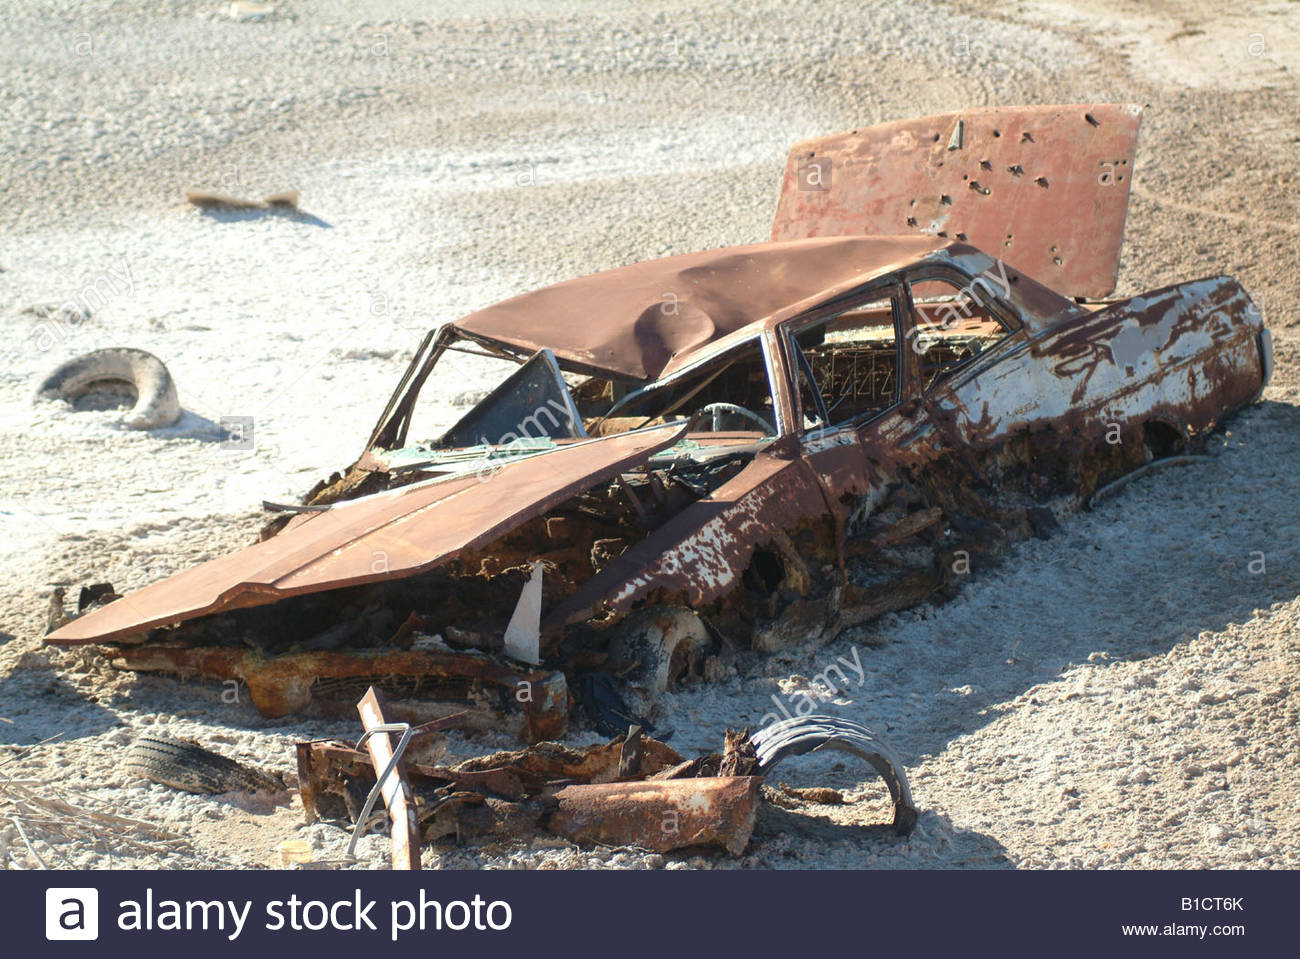 Old junk cars in the California desert USA rusting rusty scrap metal ...